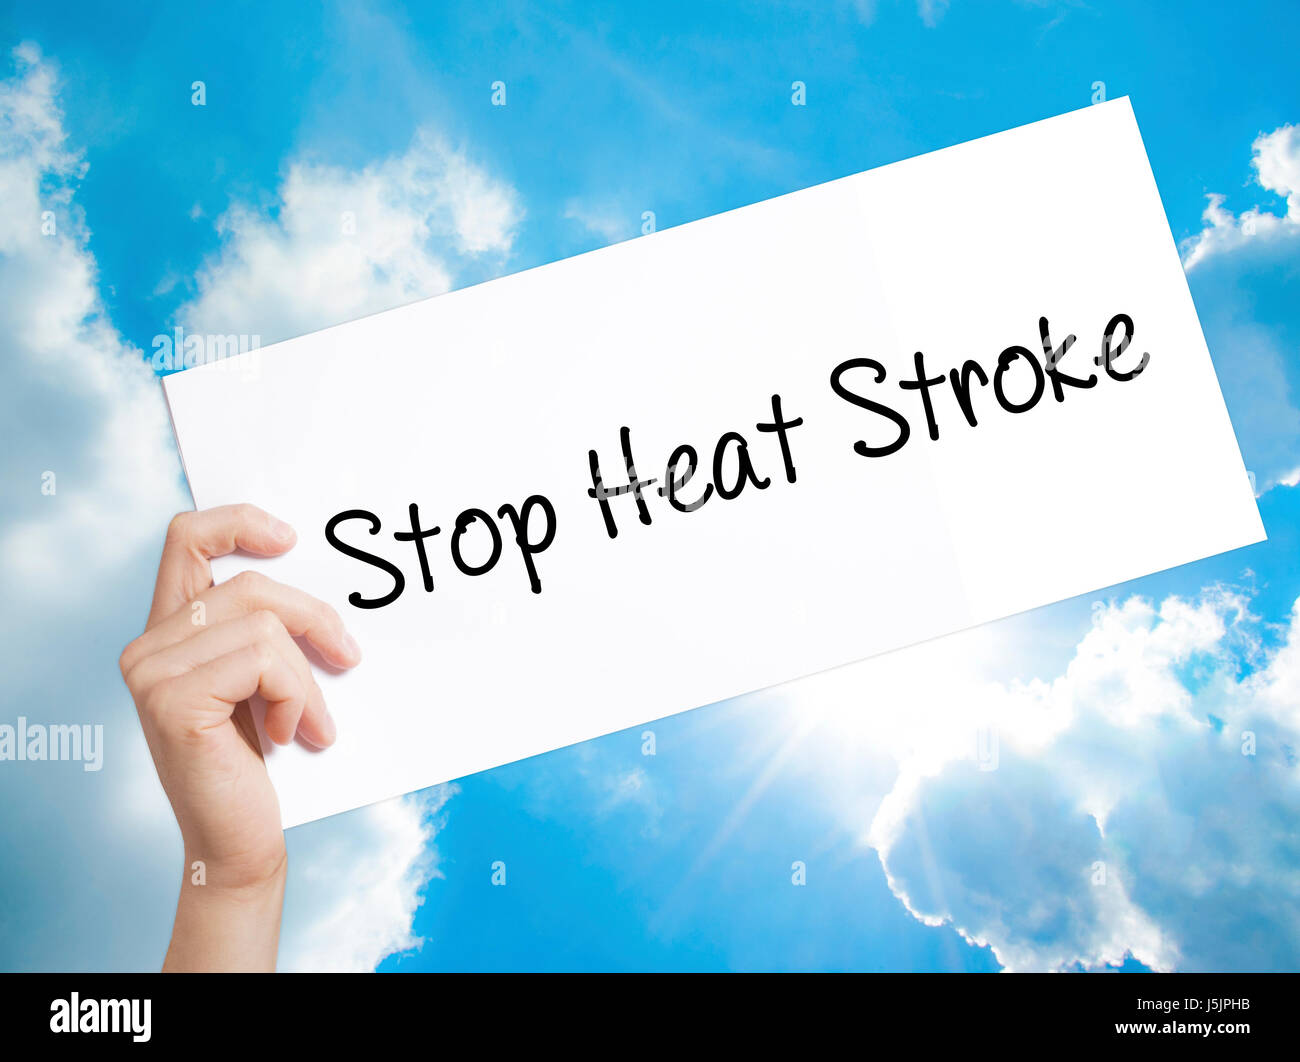 Stop Heat Stroke Sign on white paper. Man Hand Holding Paper with text. Isolated on sky background.  Business concept. - Stock Image